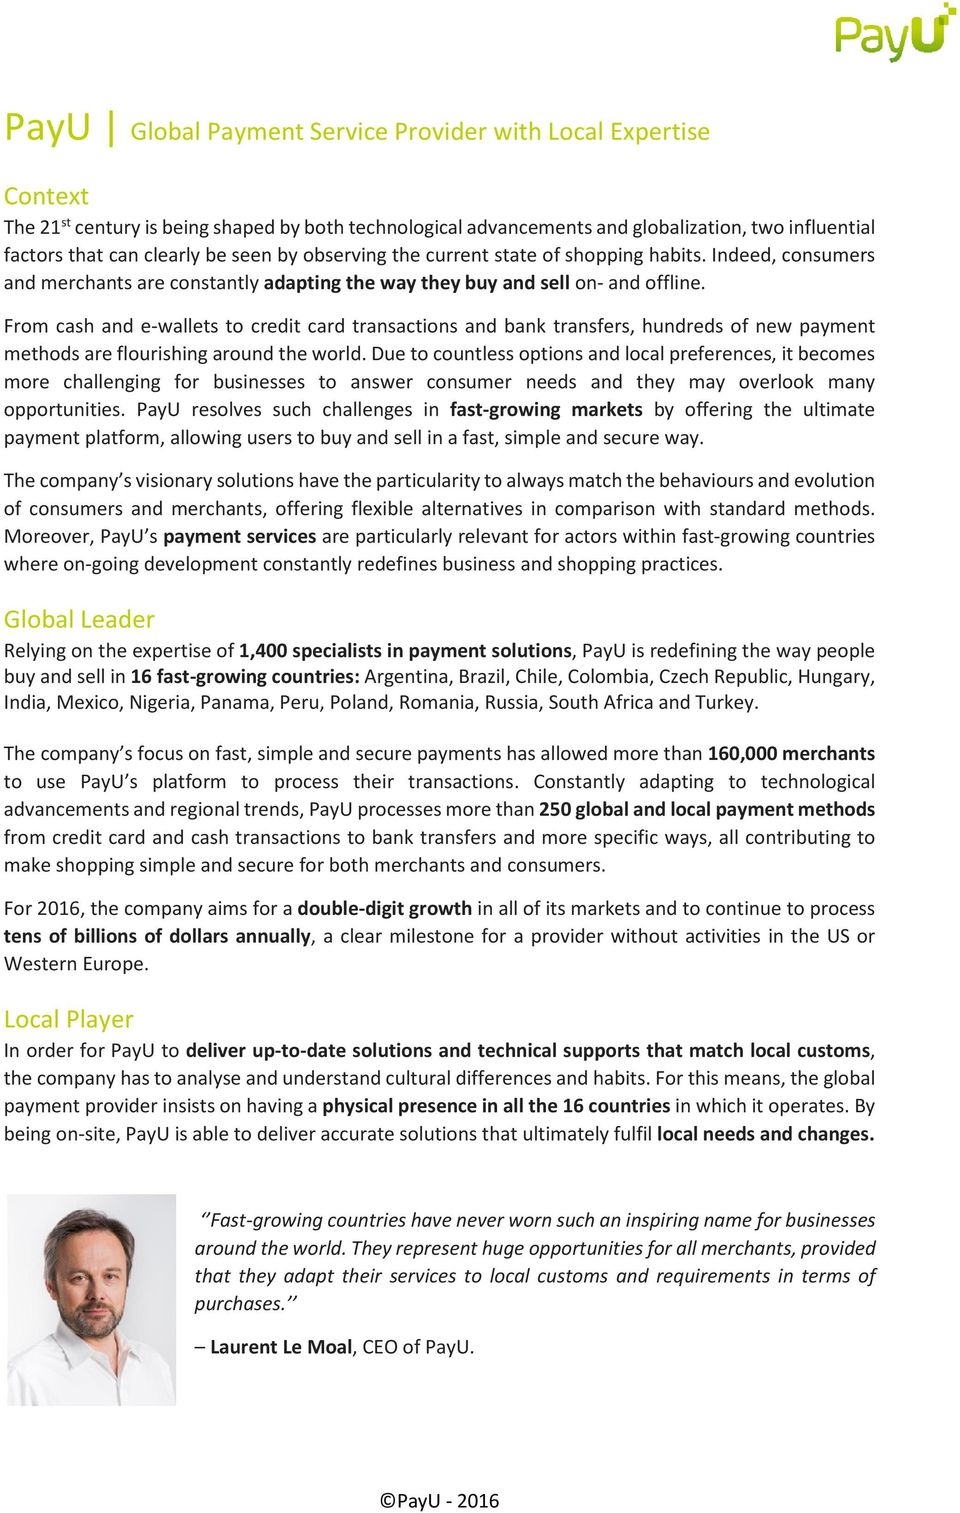 PayU Global Payment Service Provider with Local Expertise - PDF